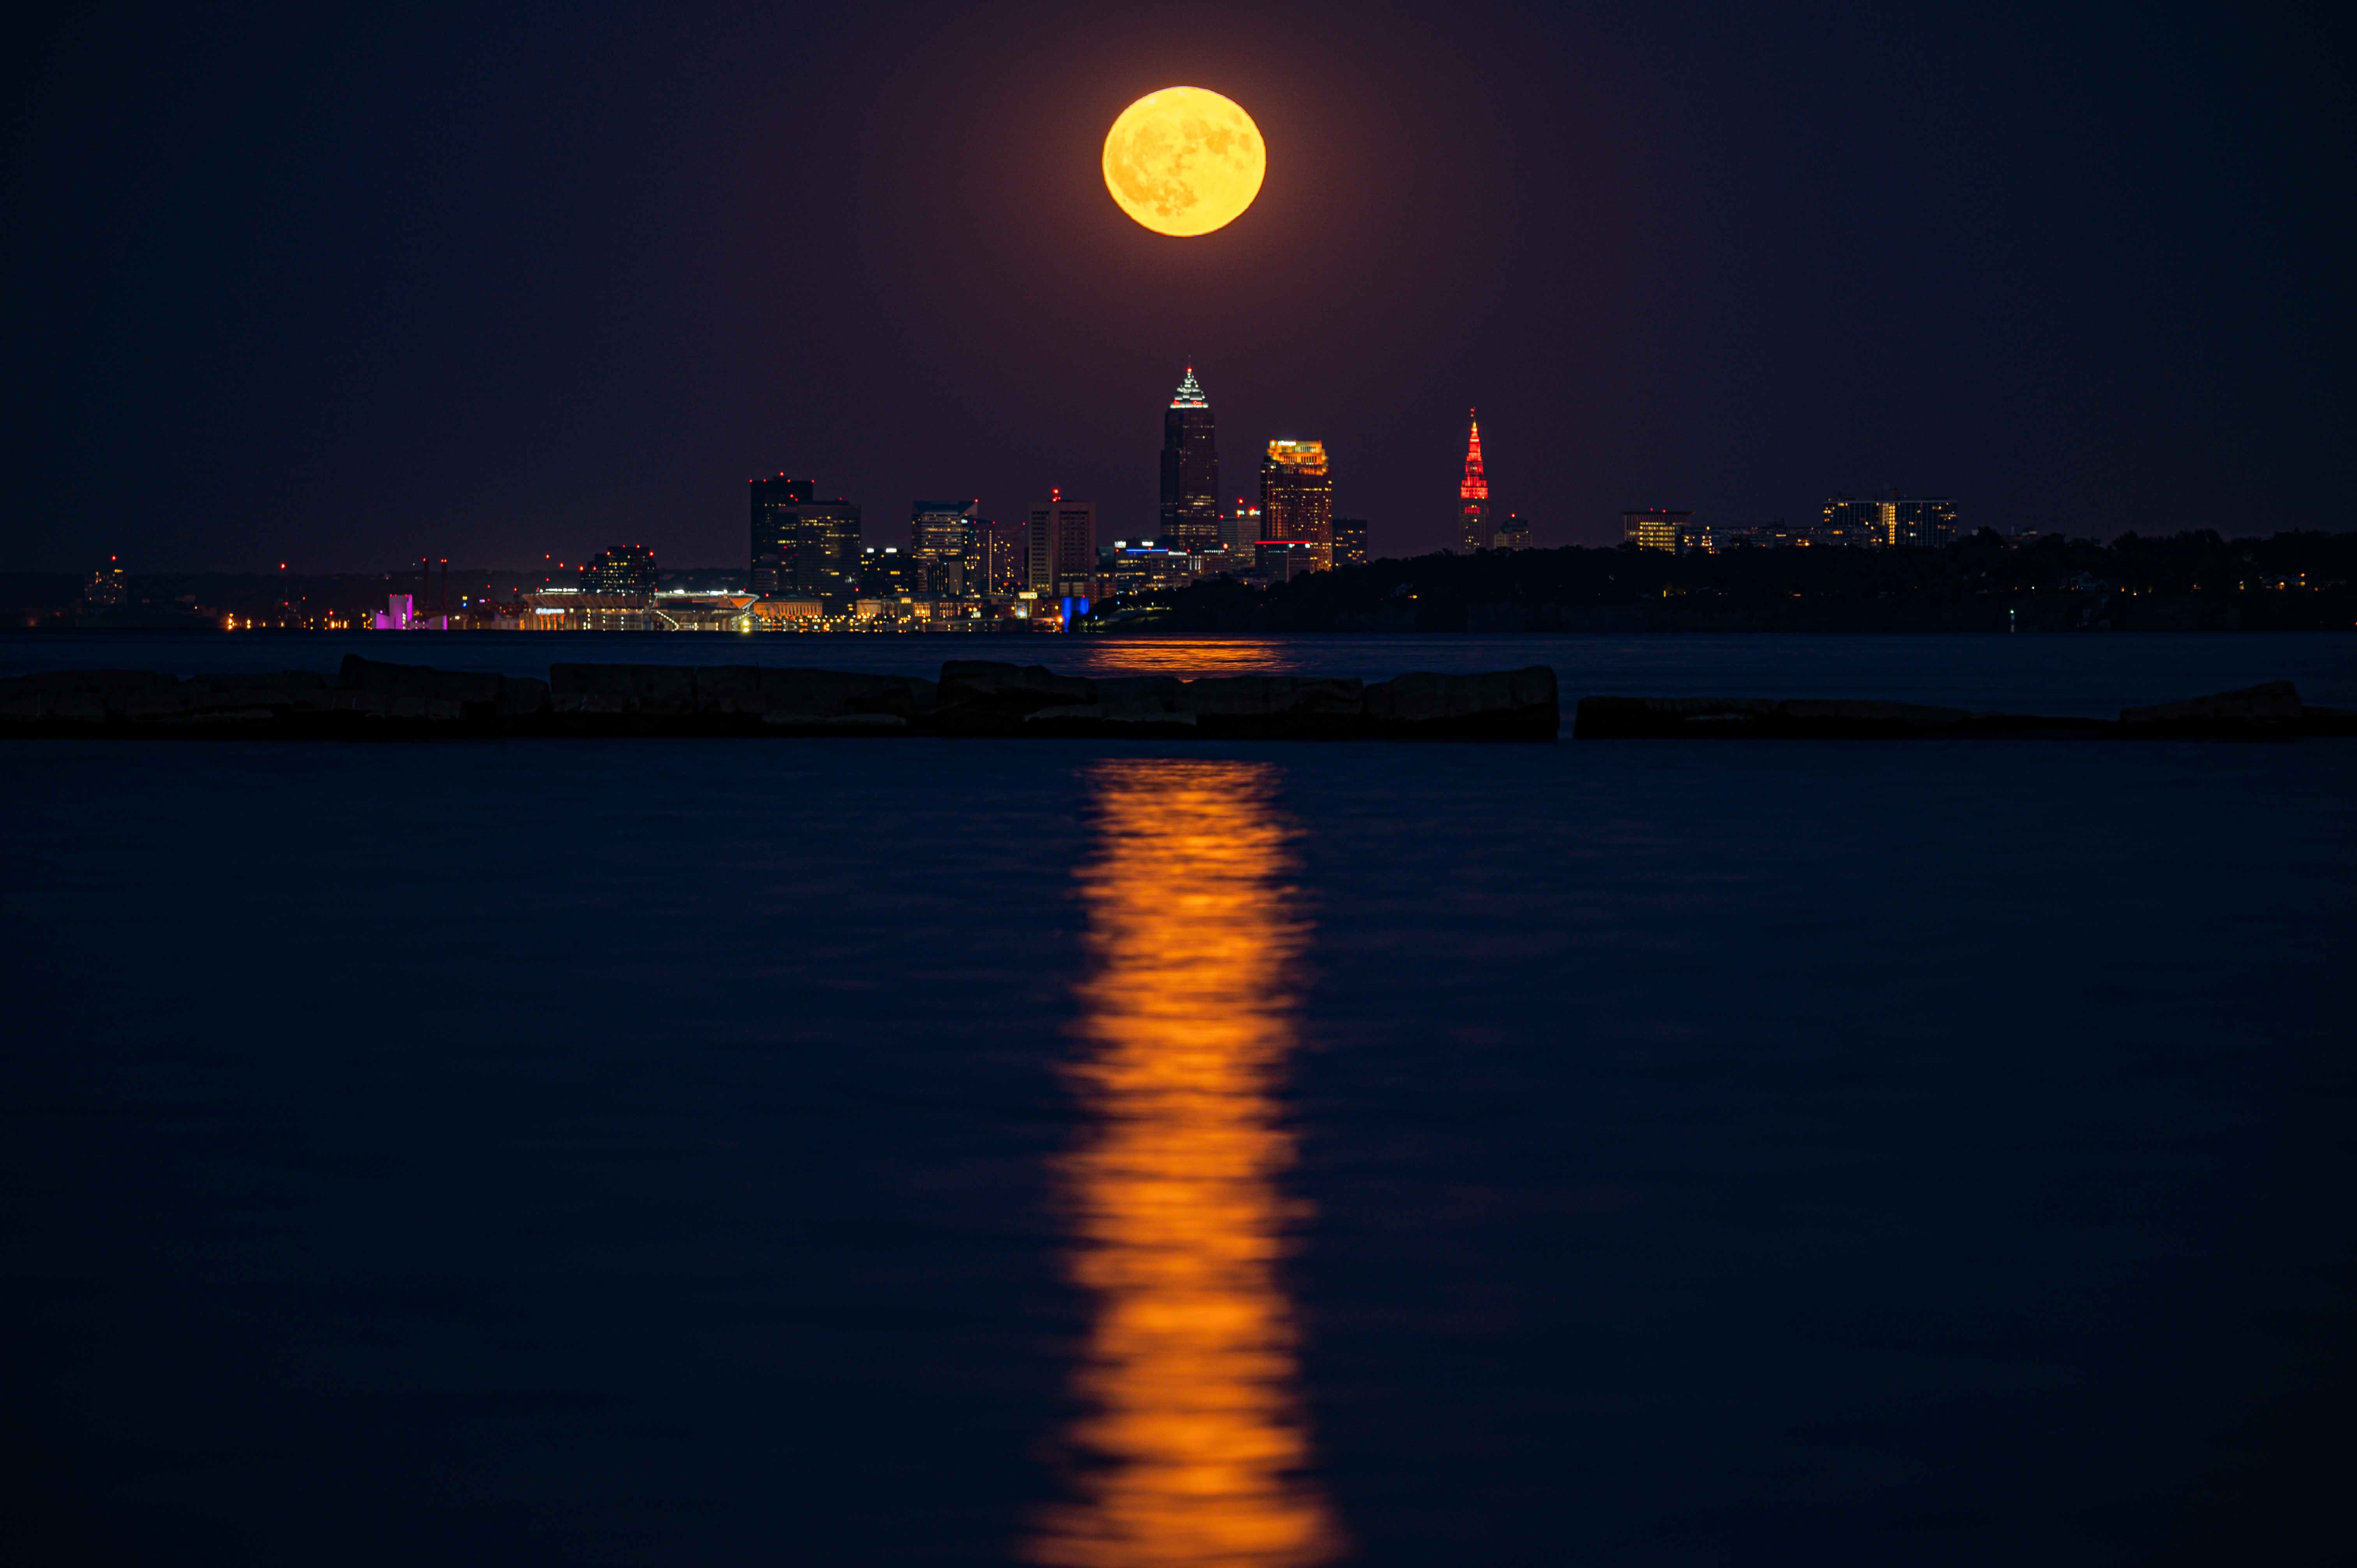 88930 download wallpaper Moon, Building, Cities, Water, Night, City, Reflection screensavers and pictures for free